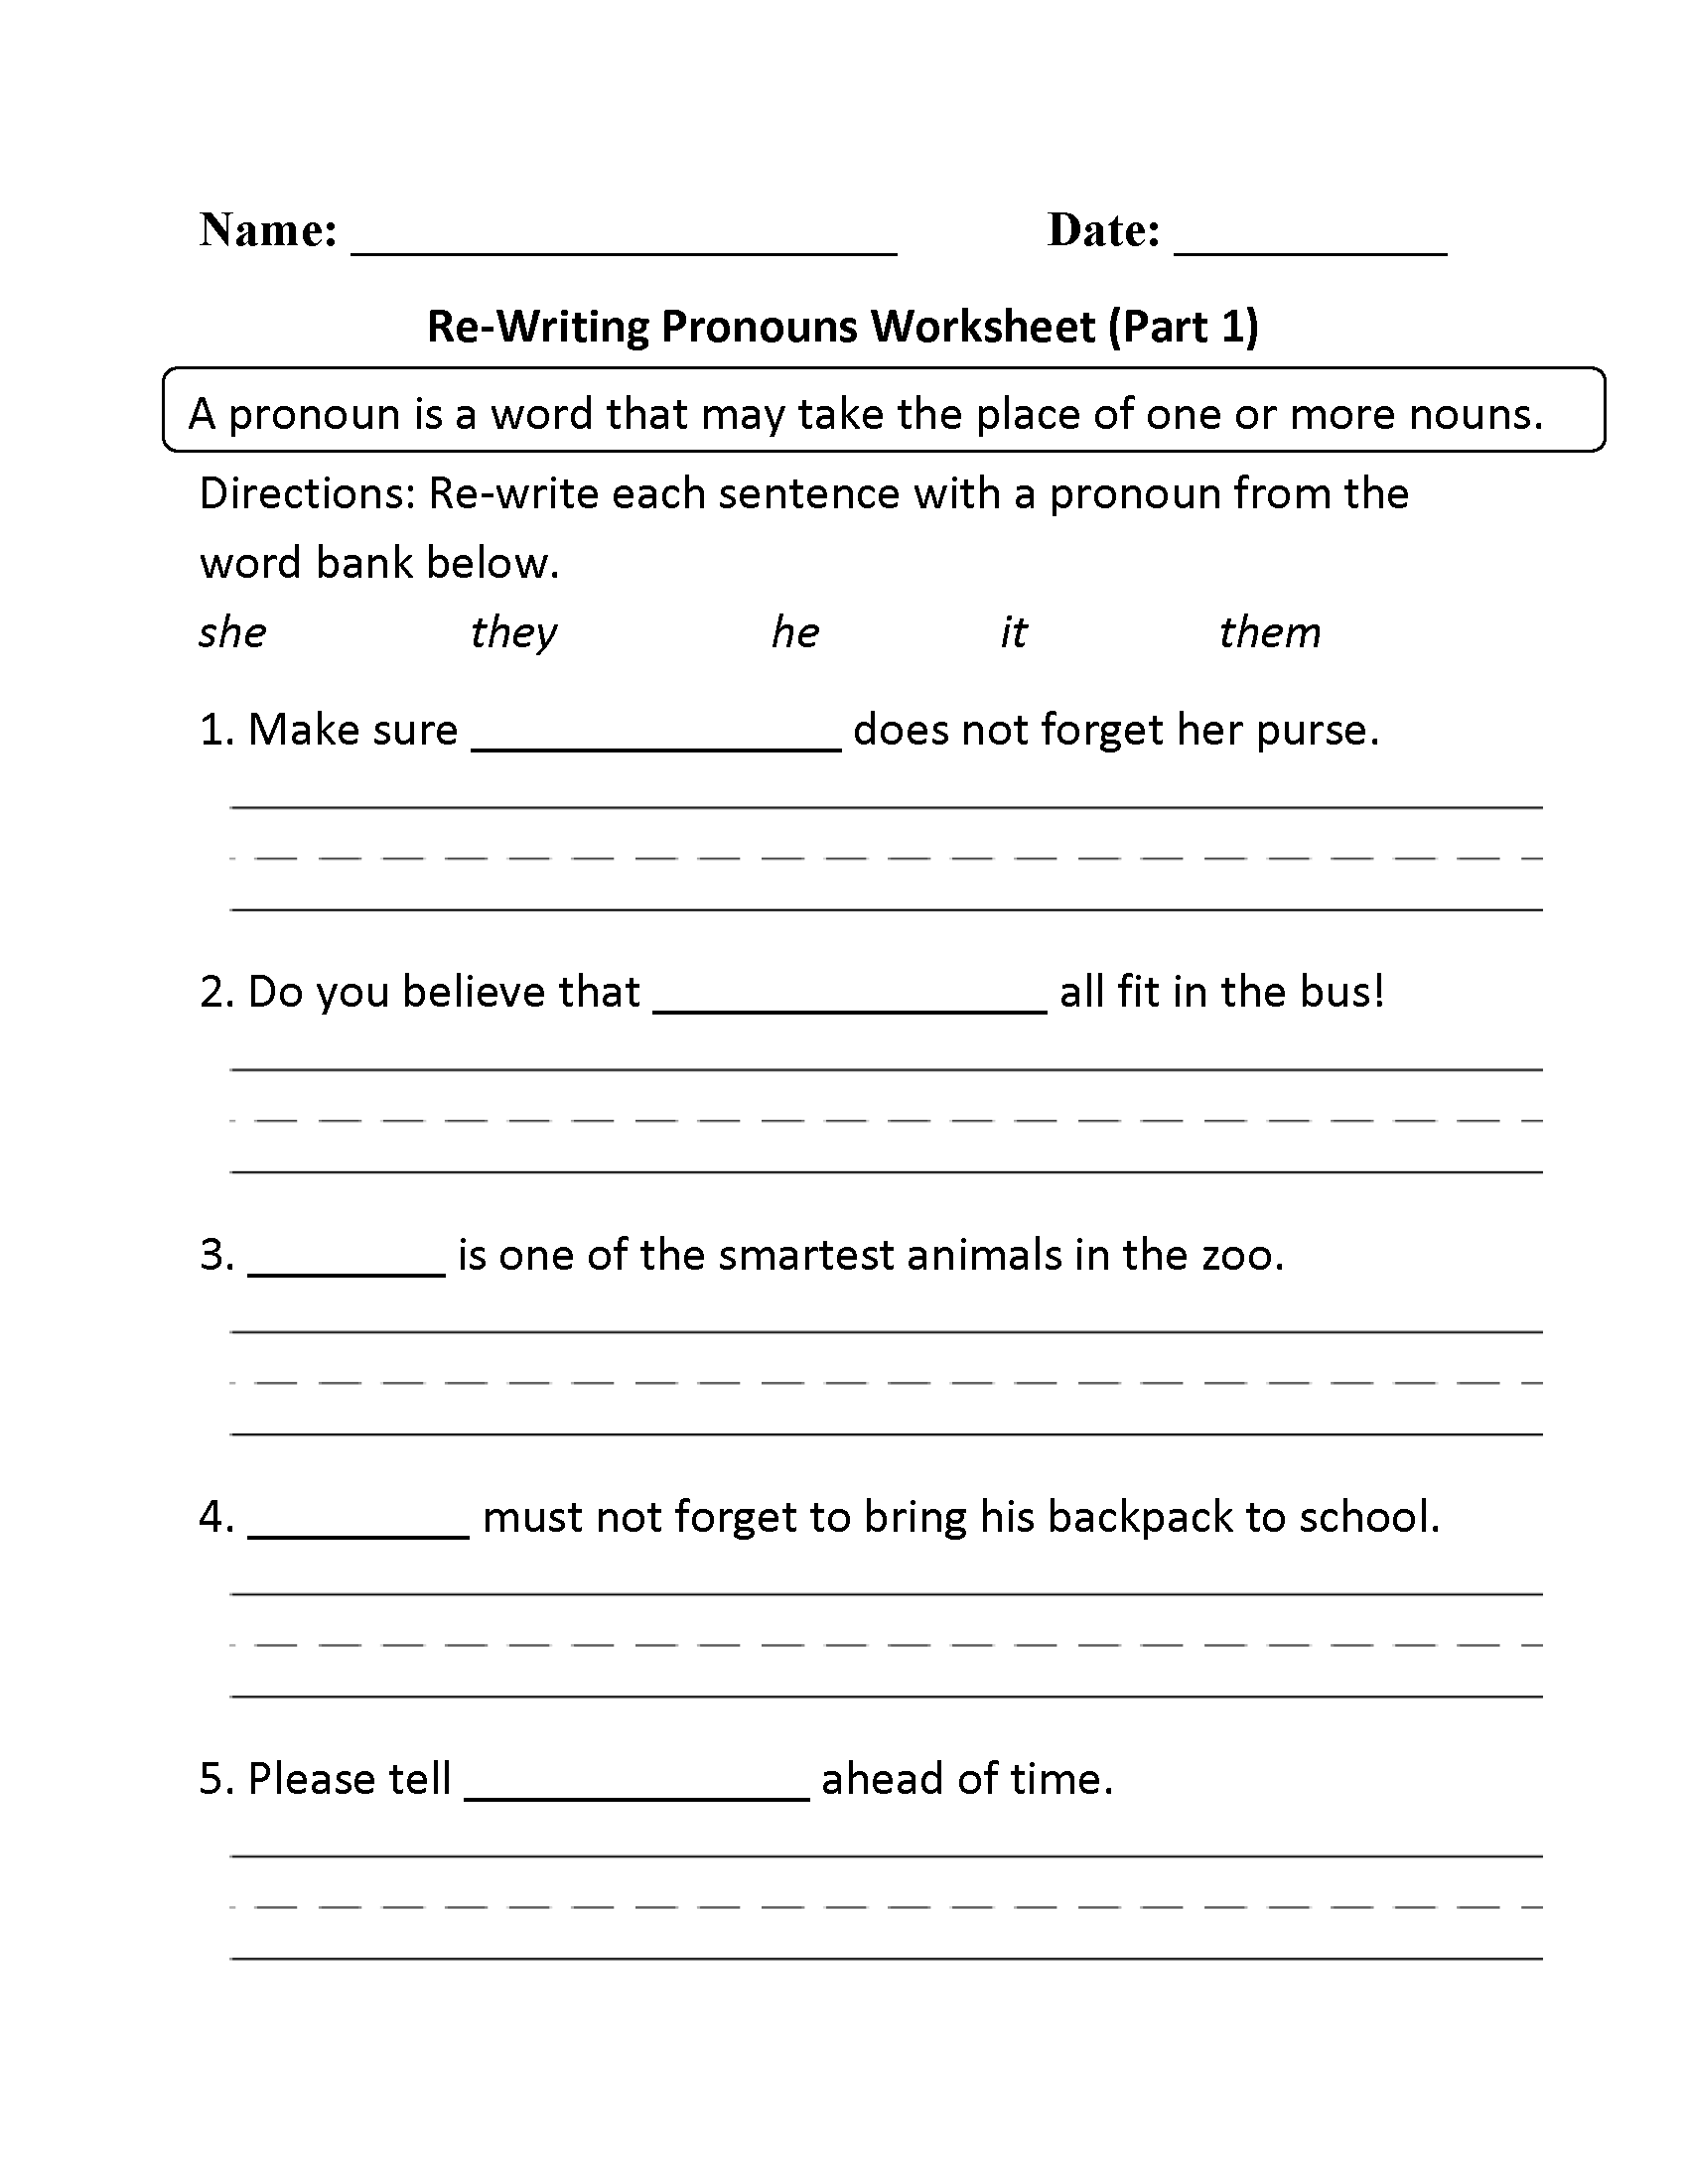 Worksheets Nouns And Pronouns Worksheet pronouns worksheets regular worksheet part 1